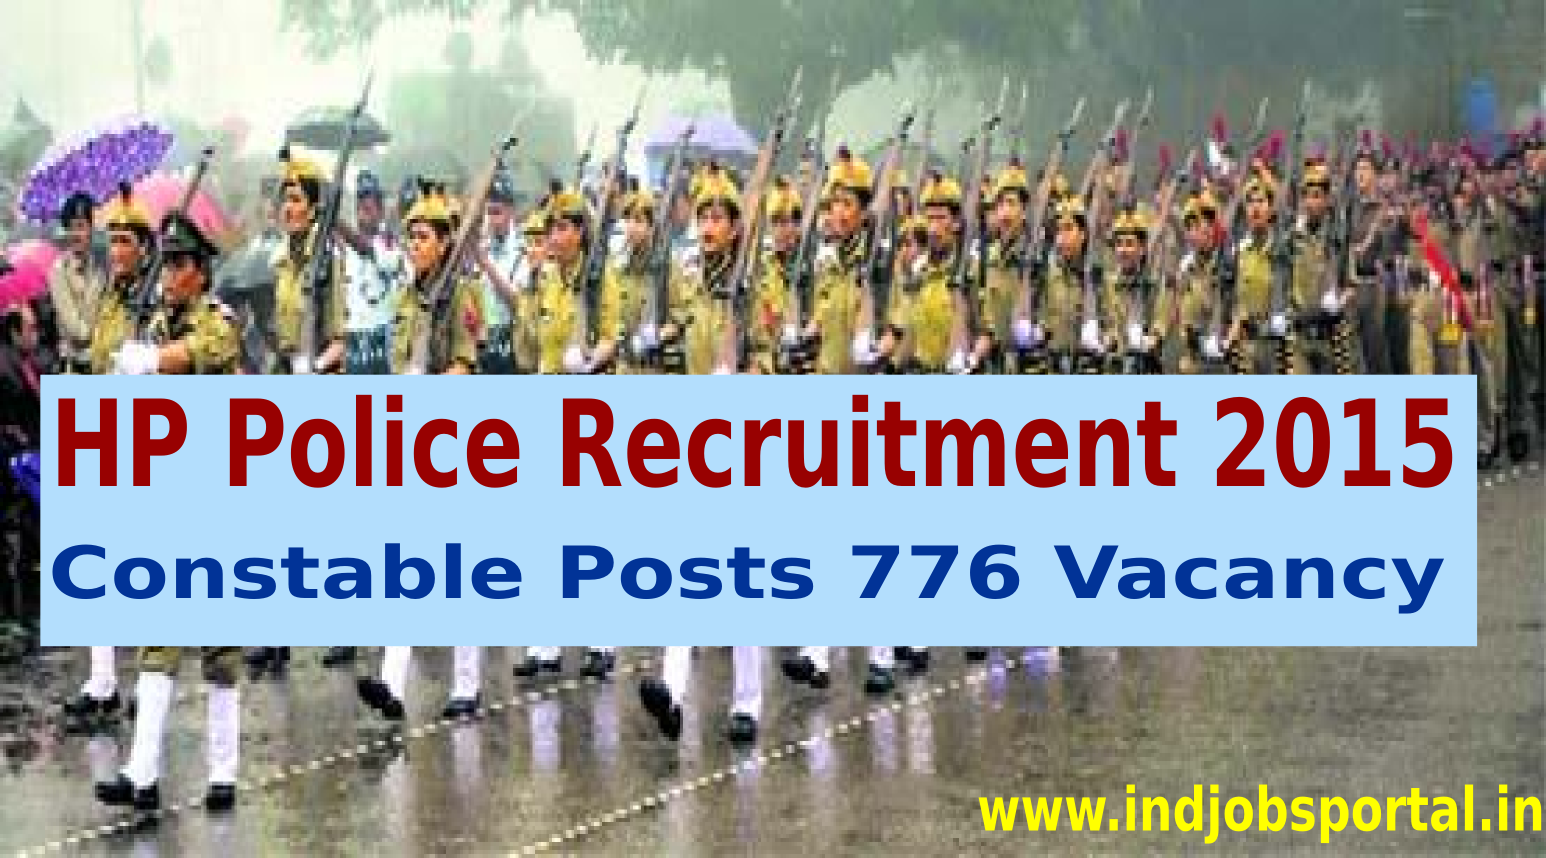 HP Police Recruitment 2015 Online Application For 776 Constable Posts